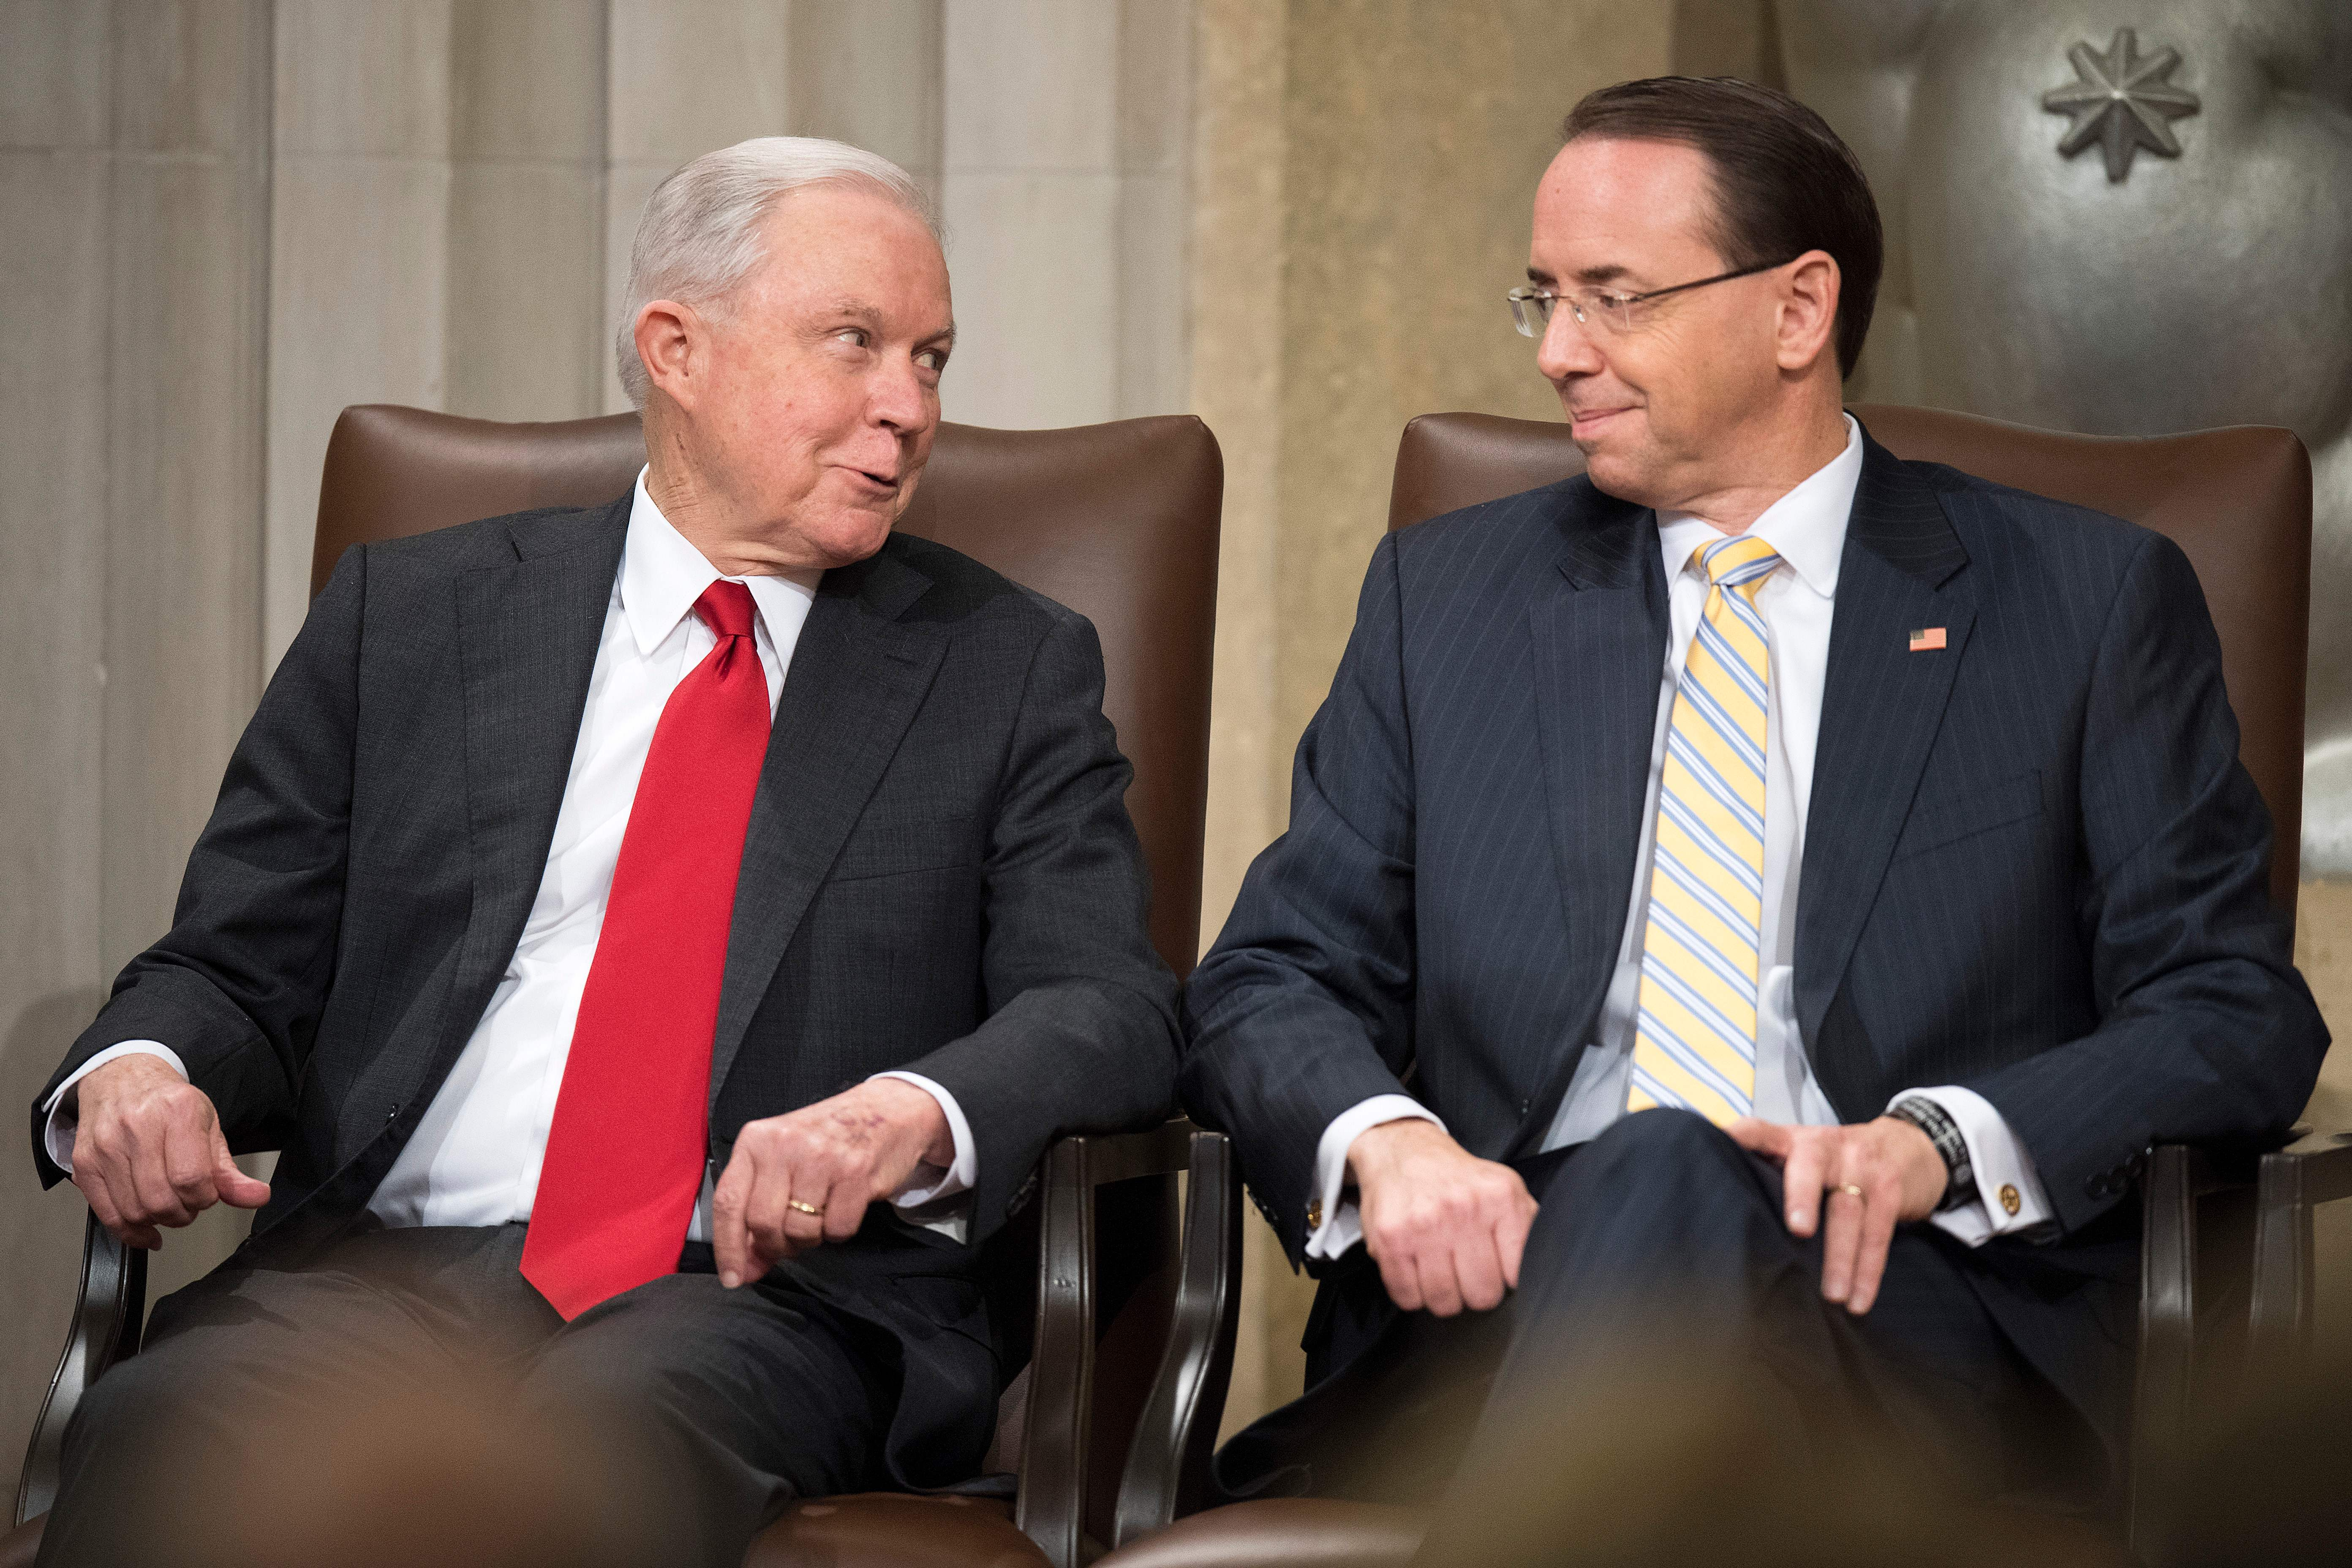 US Attorney General Jeff Sessions (L) and Deputy Attorney General Rod Rosenstein attend the US Marshal Service's Director's Honorary Awards ceremony in Washington, DC, on November 1, 2018. (Photo by Jim WATSON / AFP)